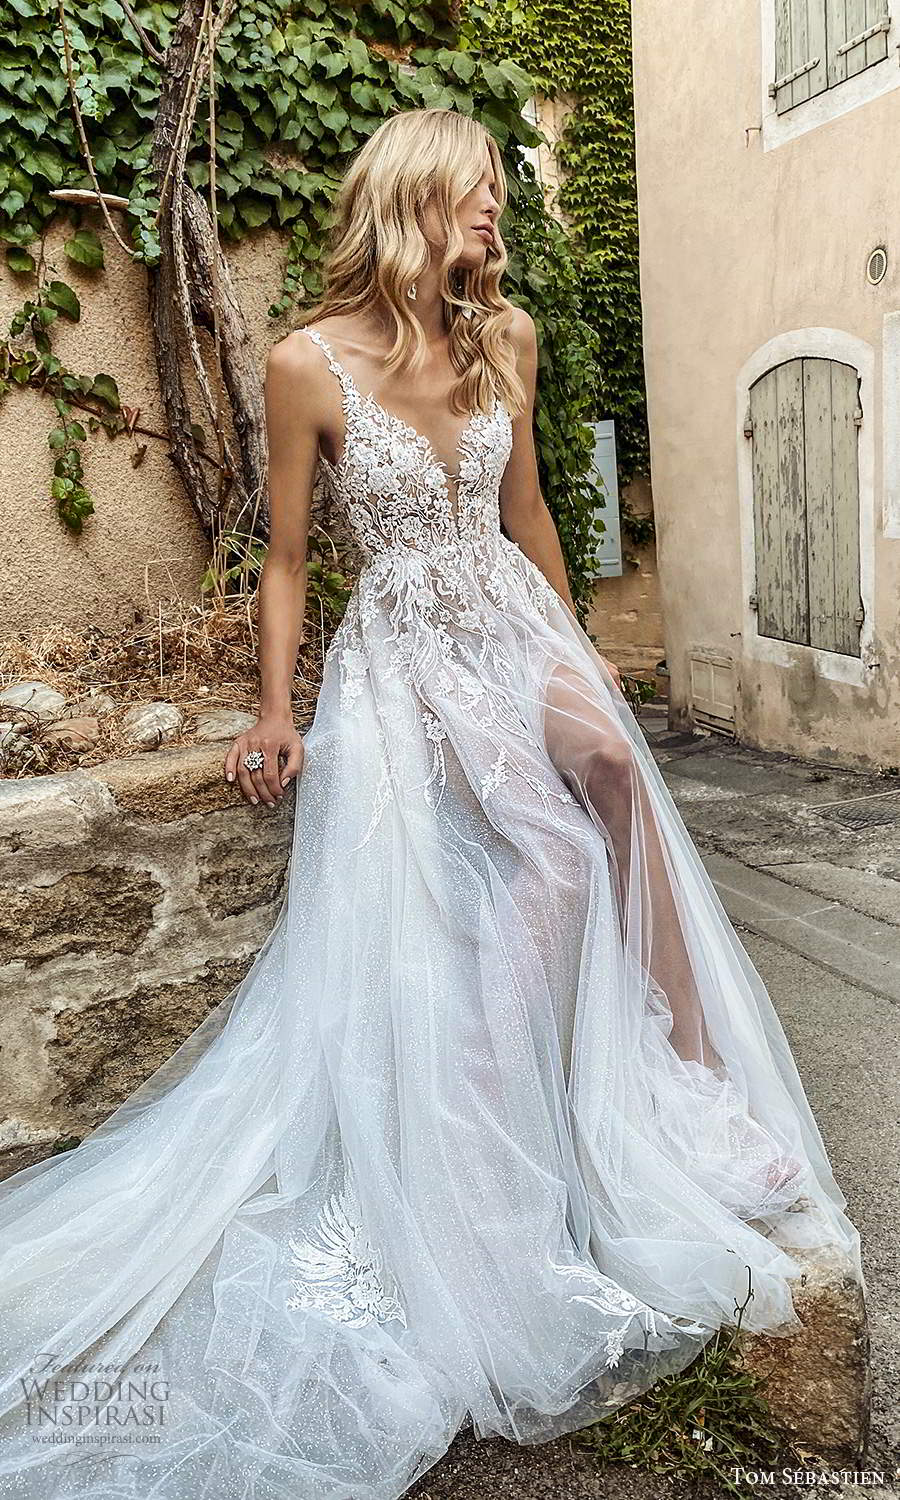 tom sebastien 2021 bridal provence sleeveless straps plunging v neckline embellished lace neckline a line ball gown wedding dress slit skirt chapel train v back (12) mv